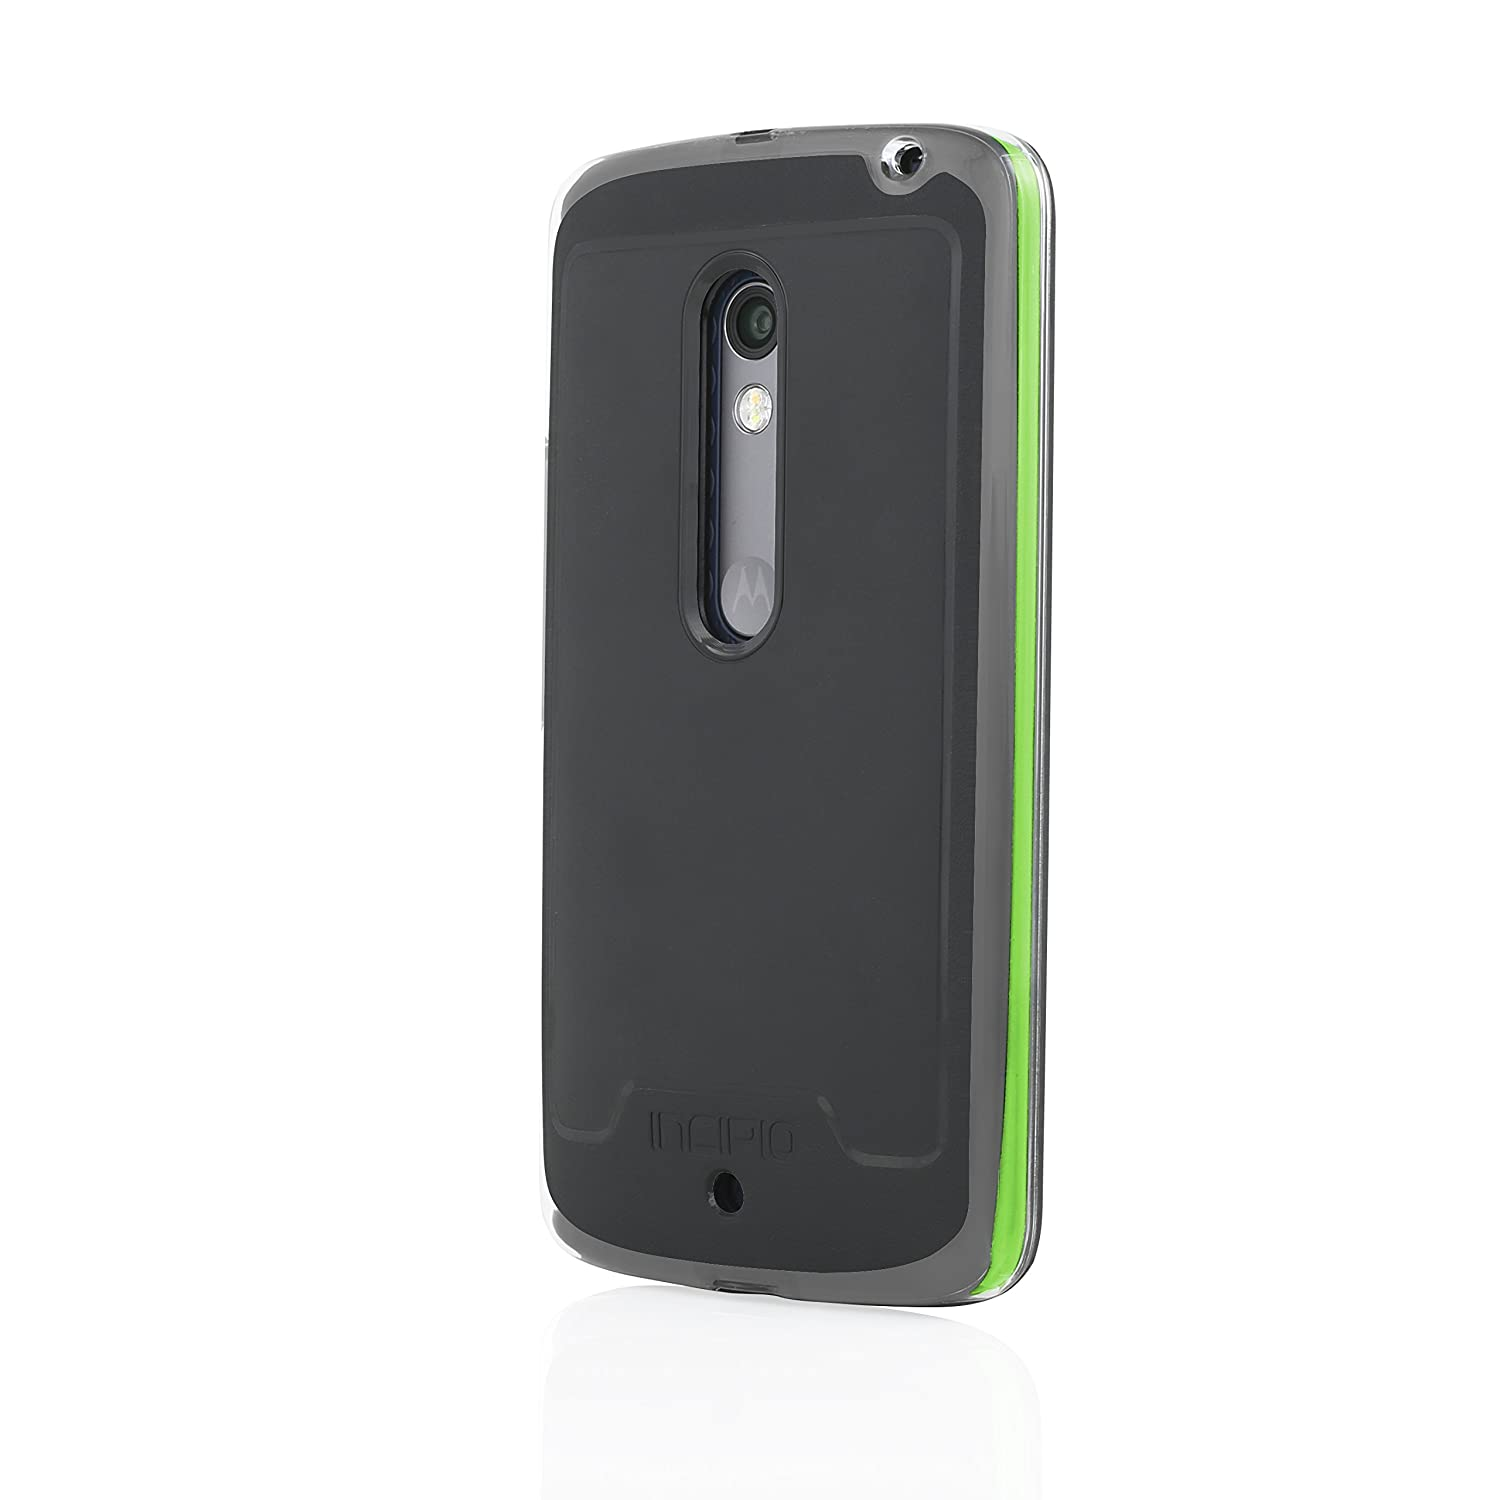 low priced b4ee1 c622d Incipio Cell Phone Case for Droid Maxx 2 - Black